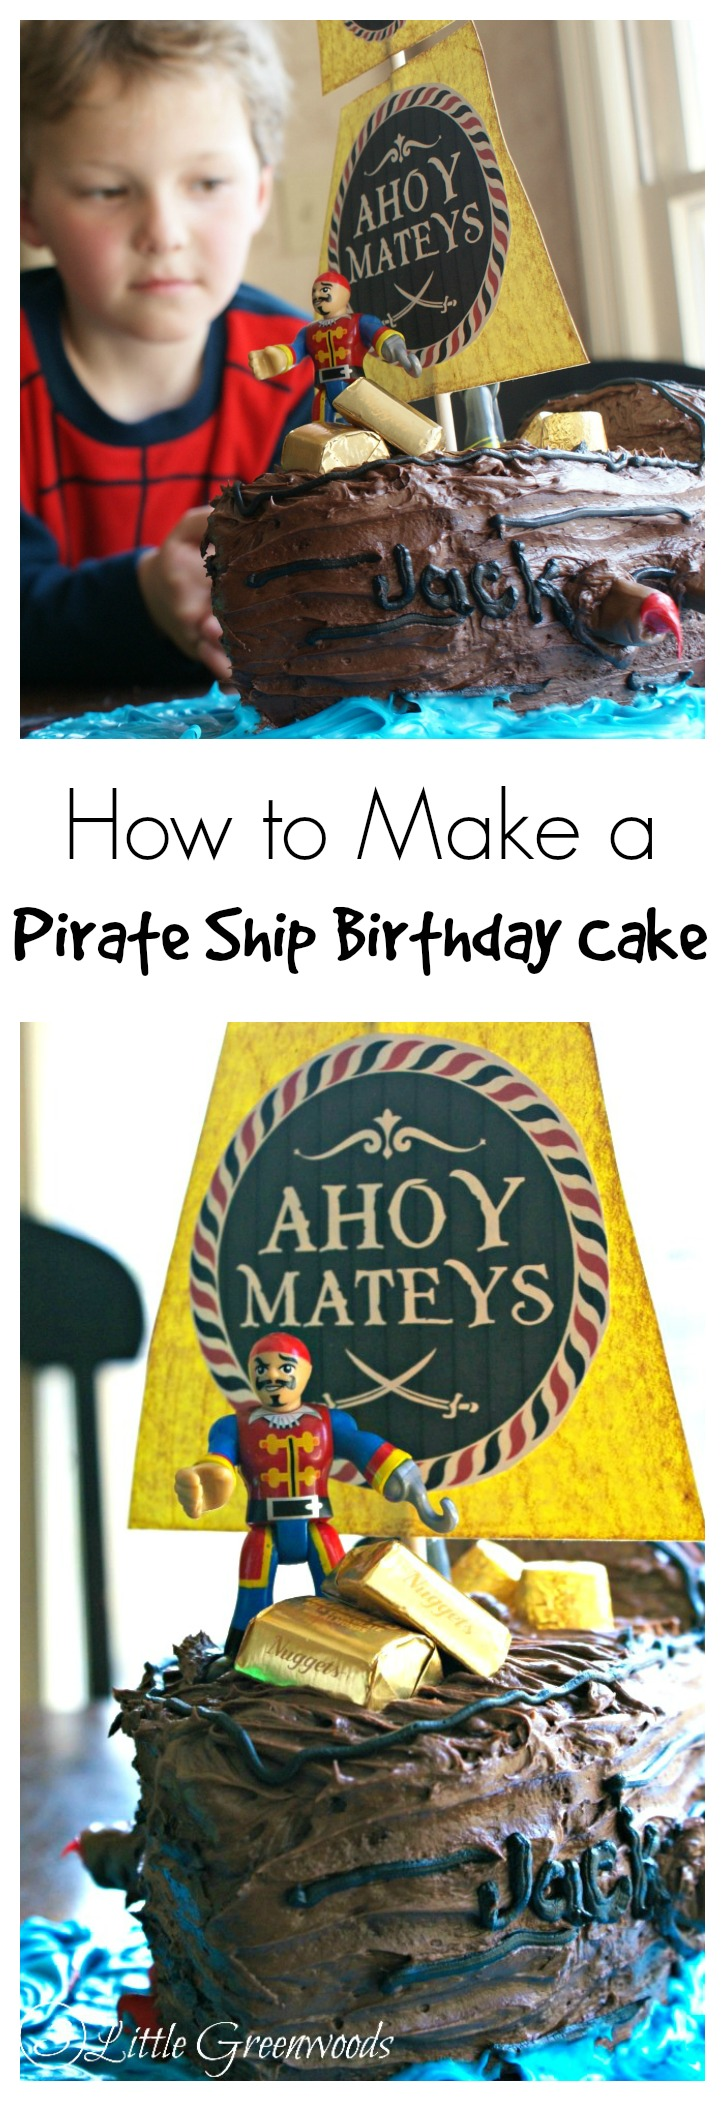 MUST PIN tutorial for How to Make a Pirate Ship Birthday Cake! A fabulously, simple tutorial telling you exactly how to make a pirate ship cake for a pirate birthday party!